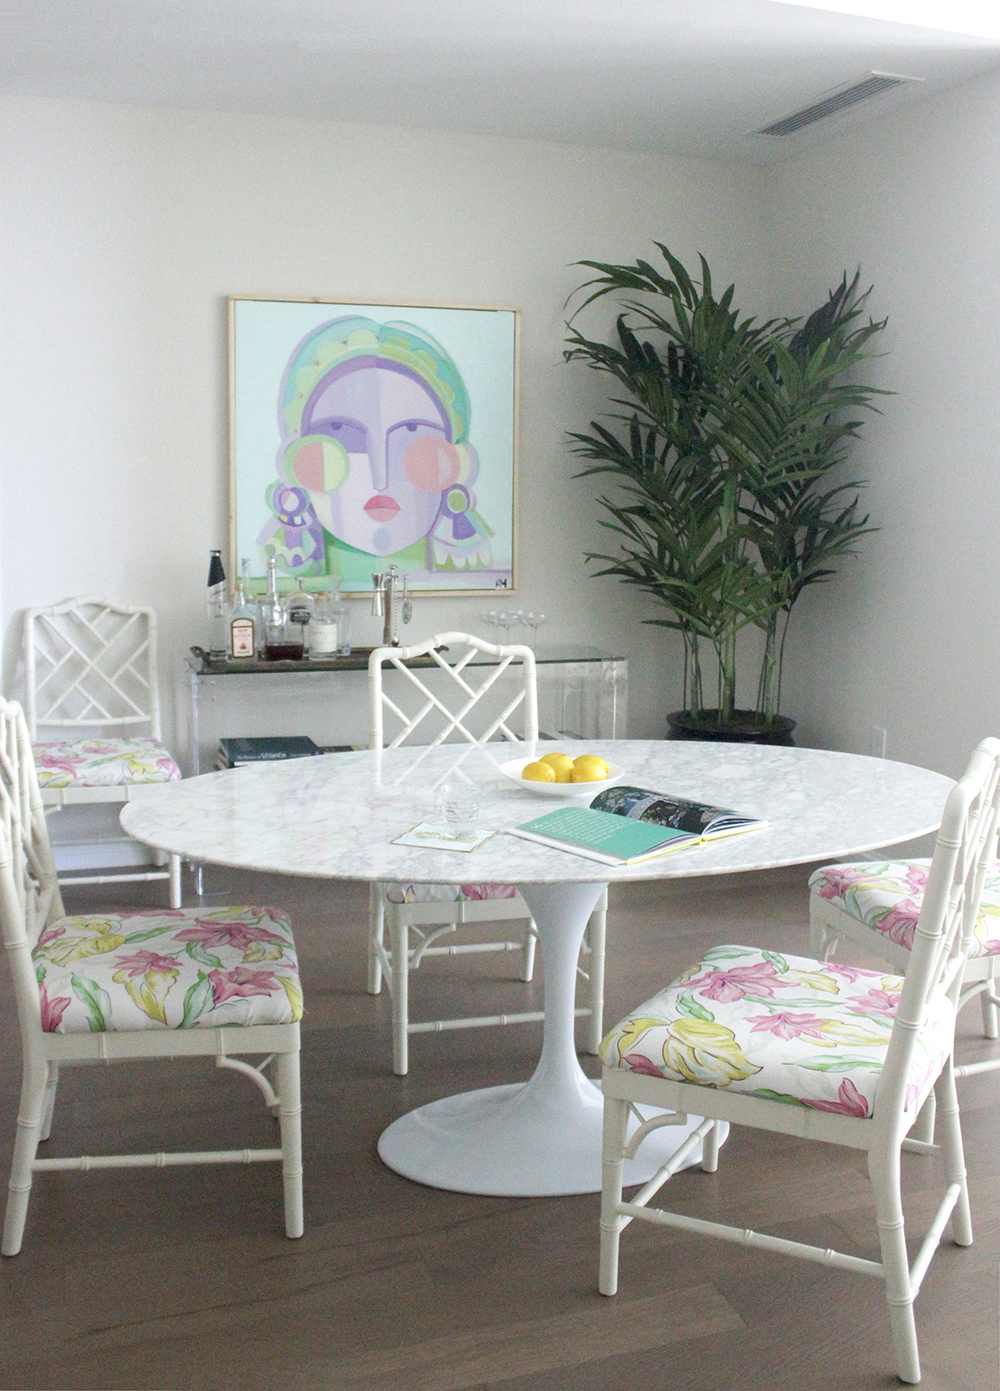 easy upholstery diy with ballard designs jana bek design to be sharing the diy on ballard s design blog today check out the super simple tips i hope they inspire you to give a chair a new lease on life